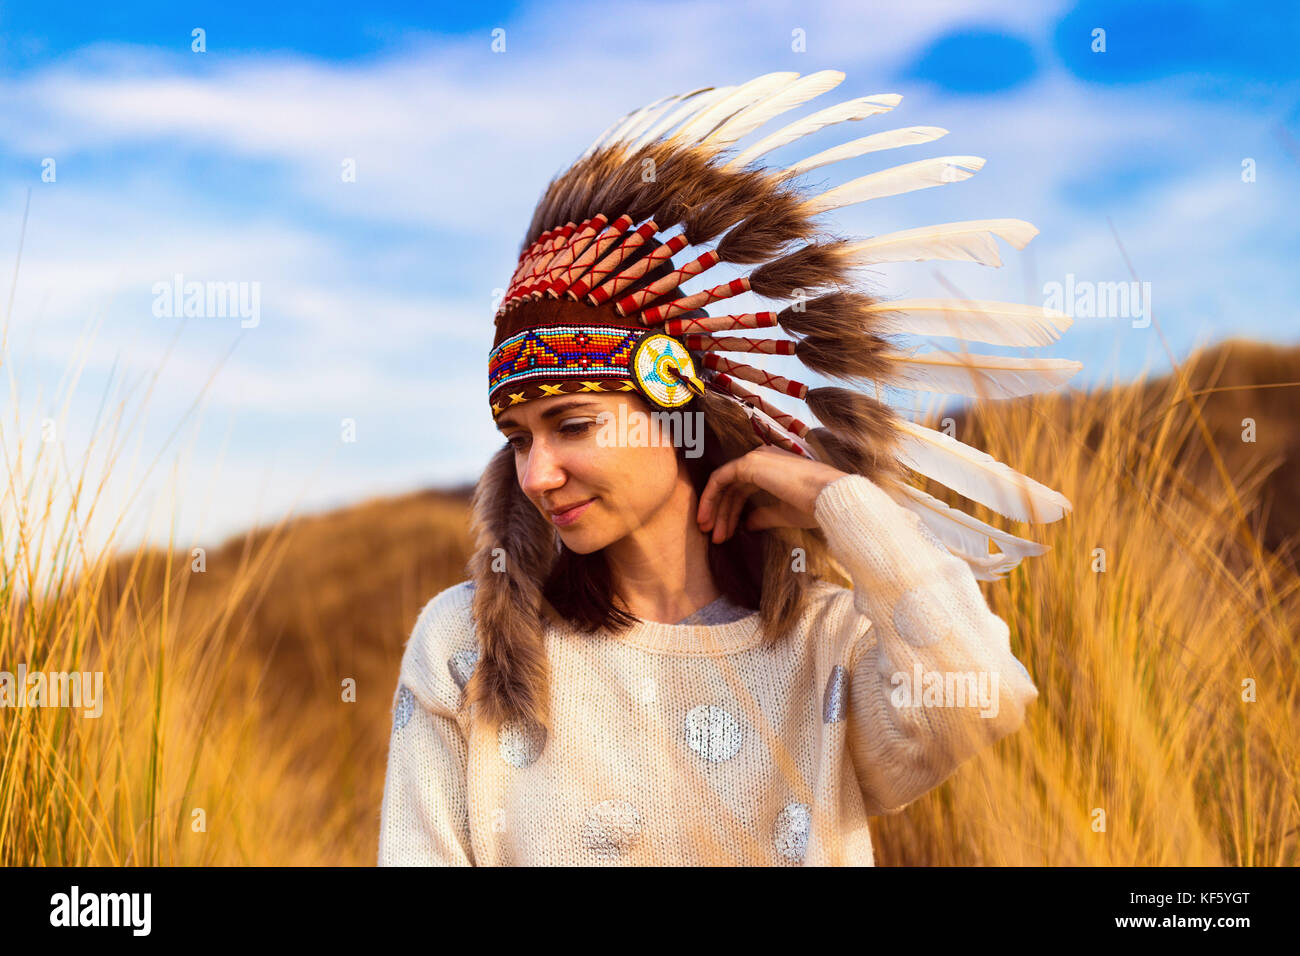 Beautiful young woman in black dotted white chief style Native American headdress during sunset - Stock Image